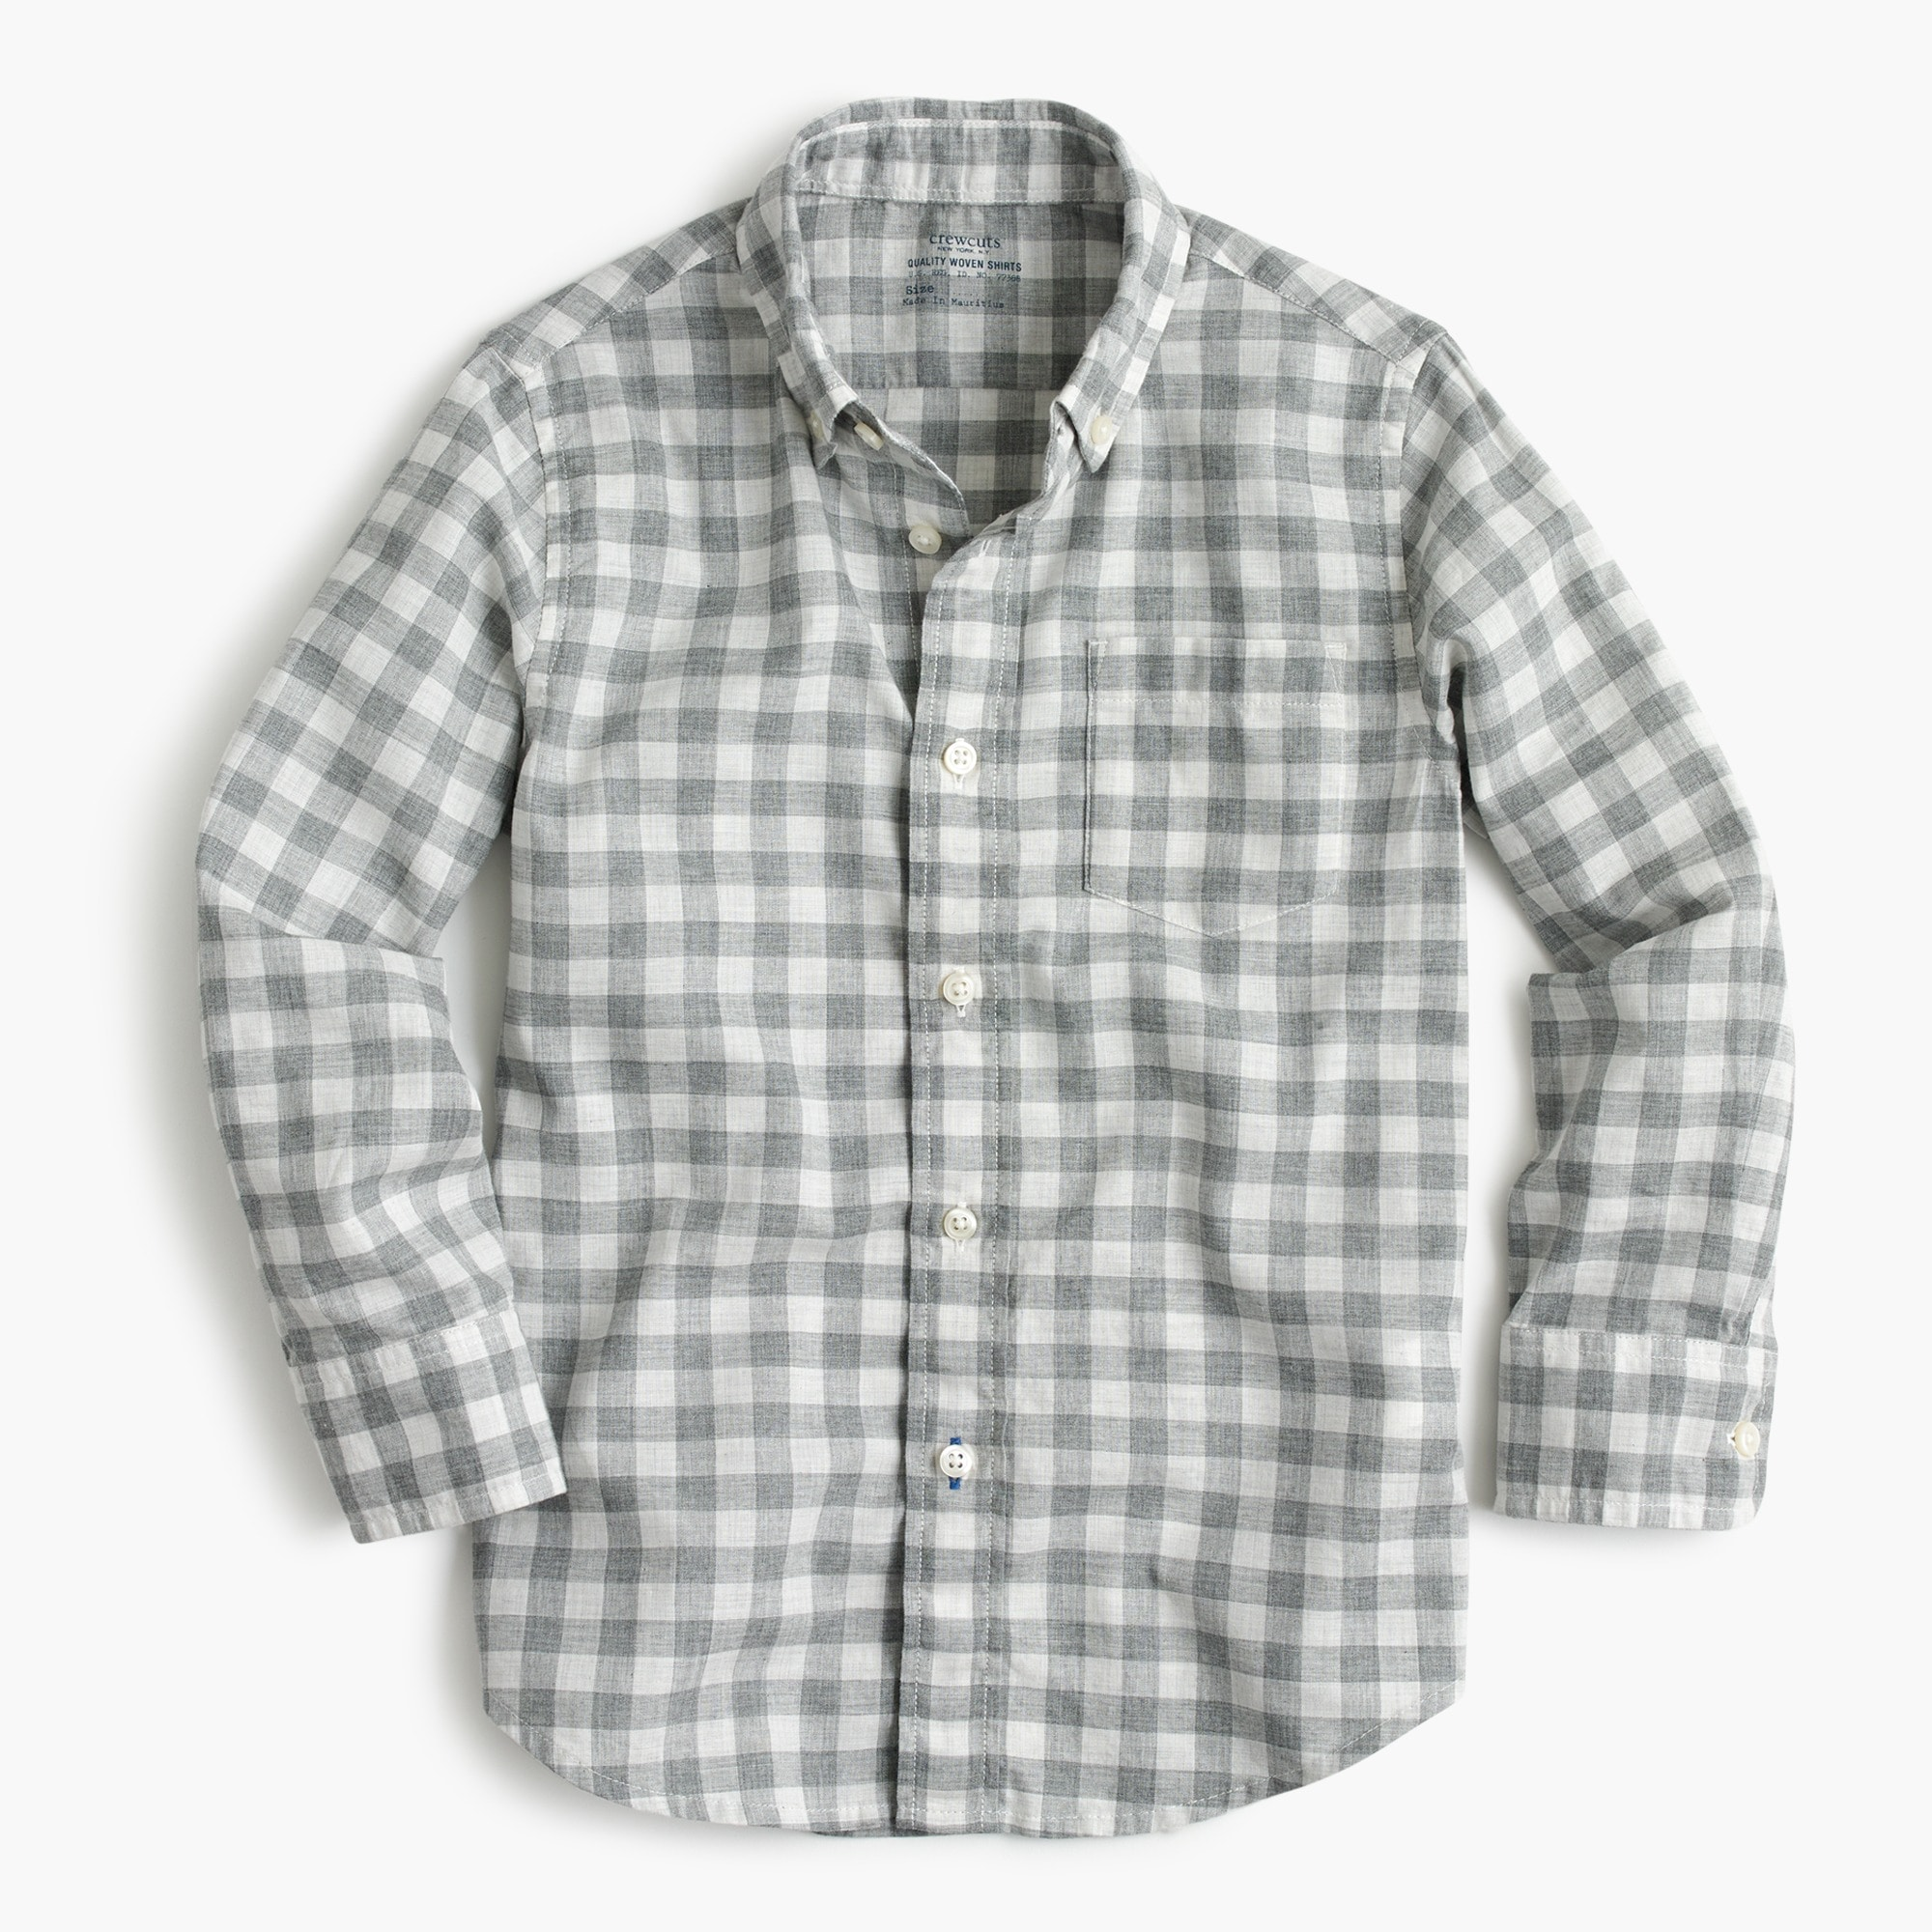 Kids' Secret Wash shirt in heathered gingham